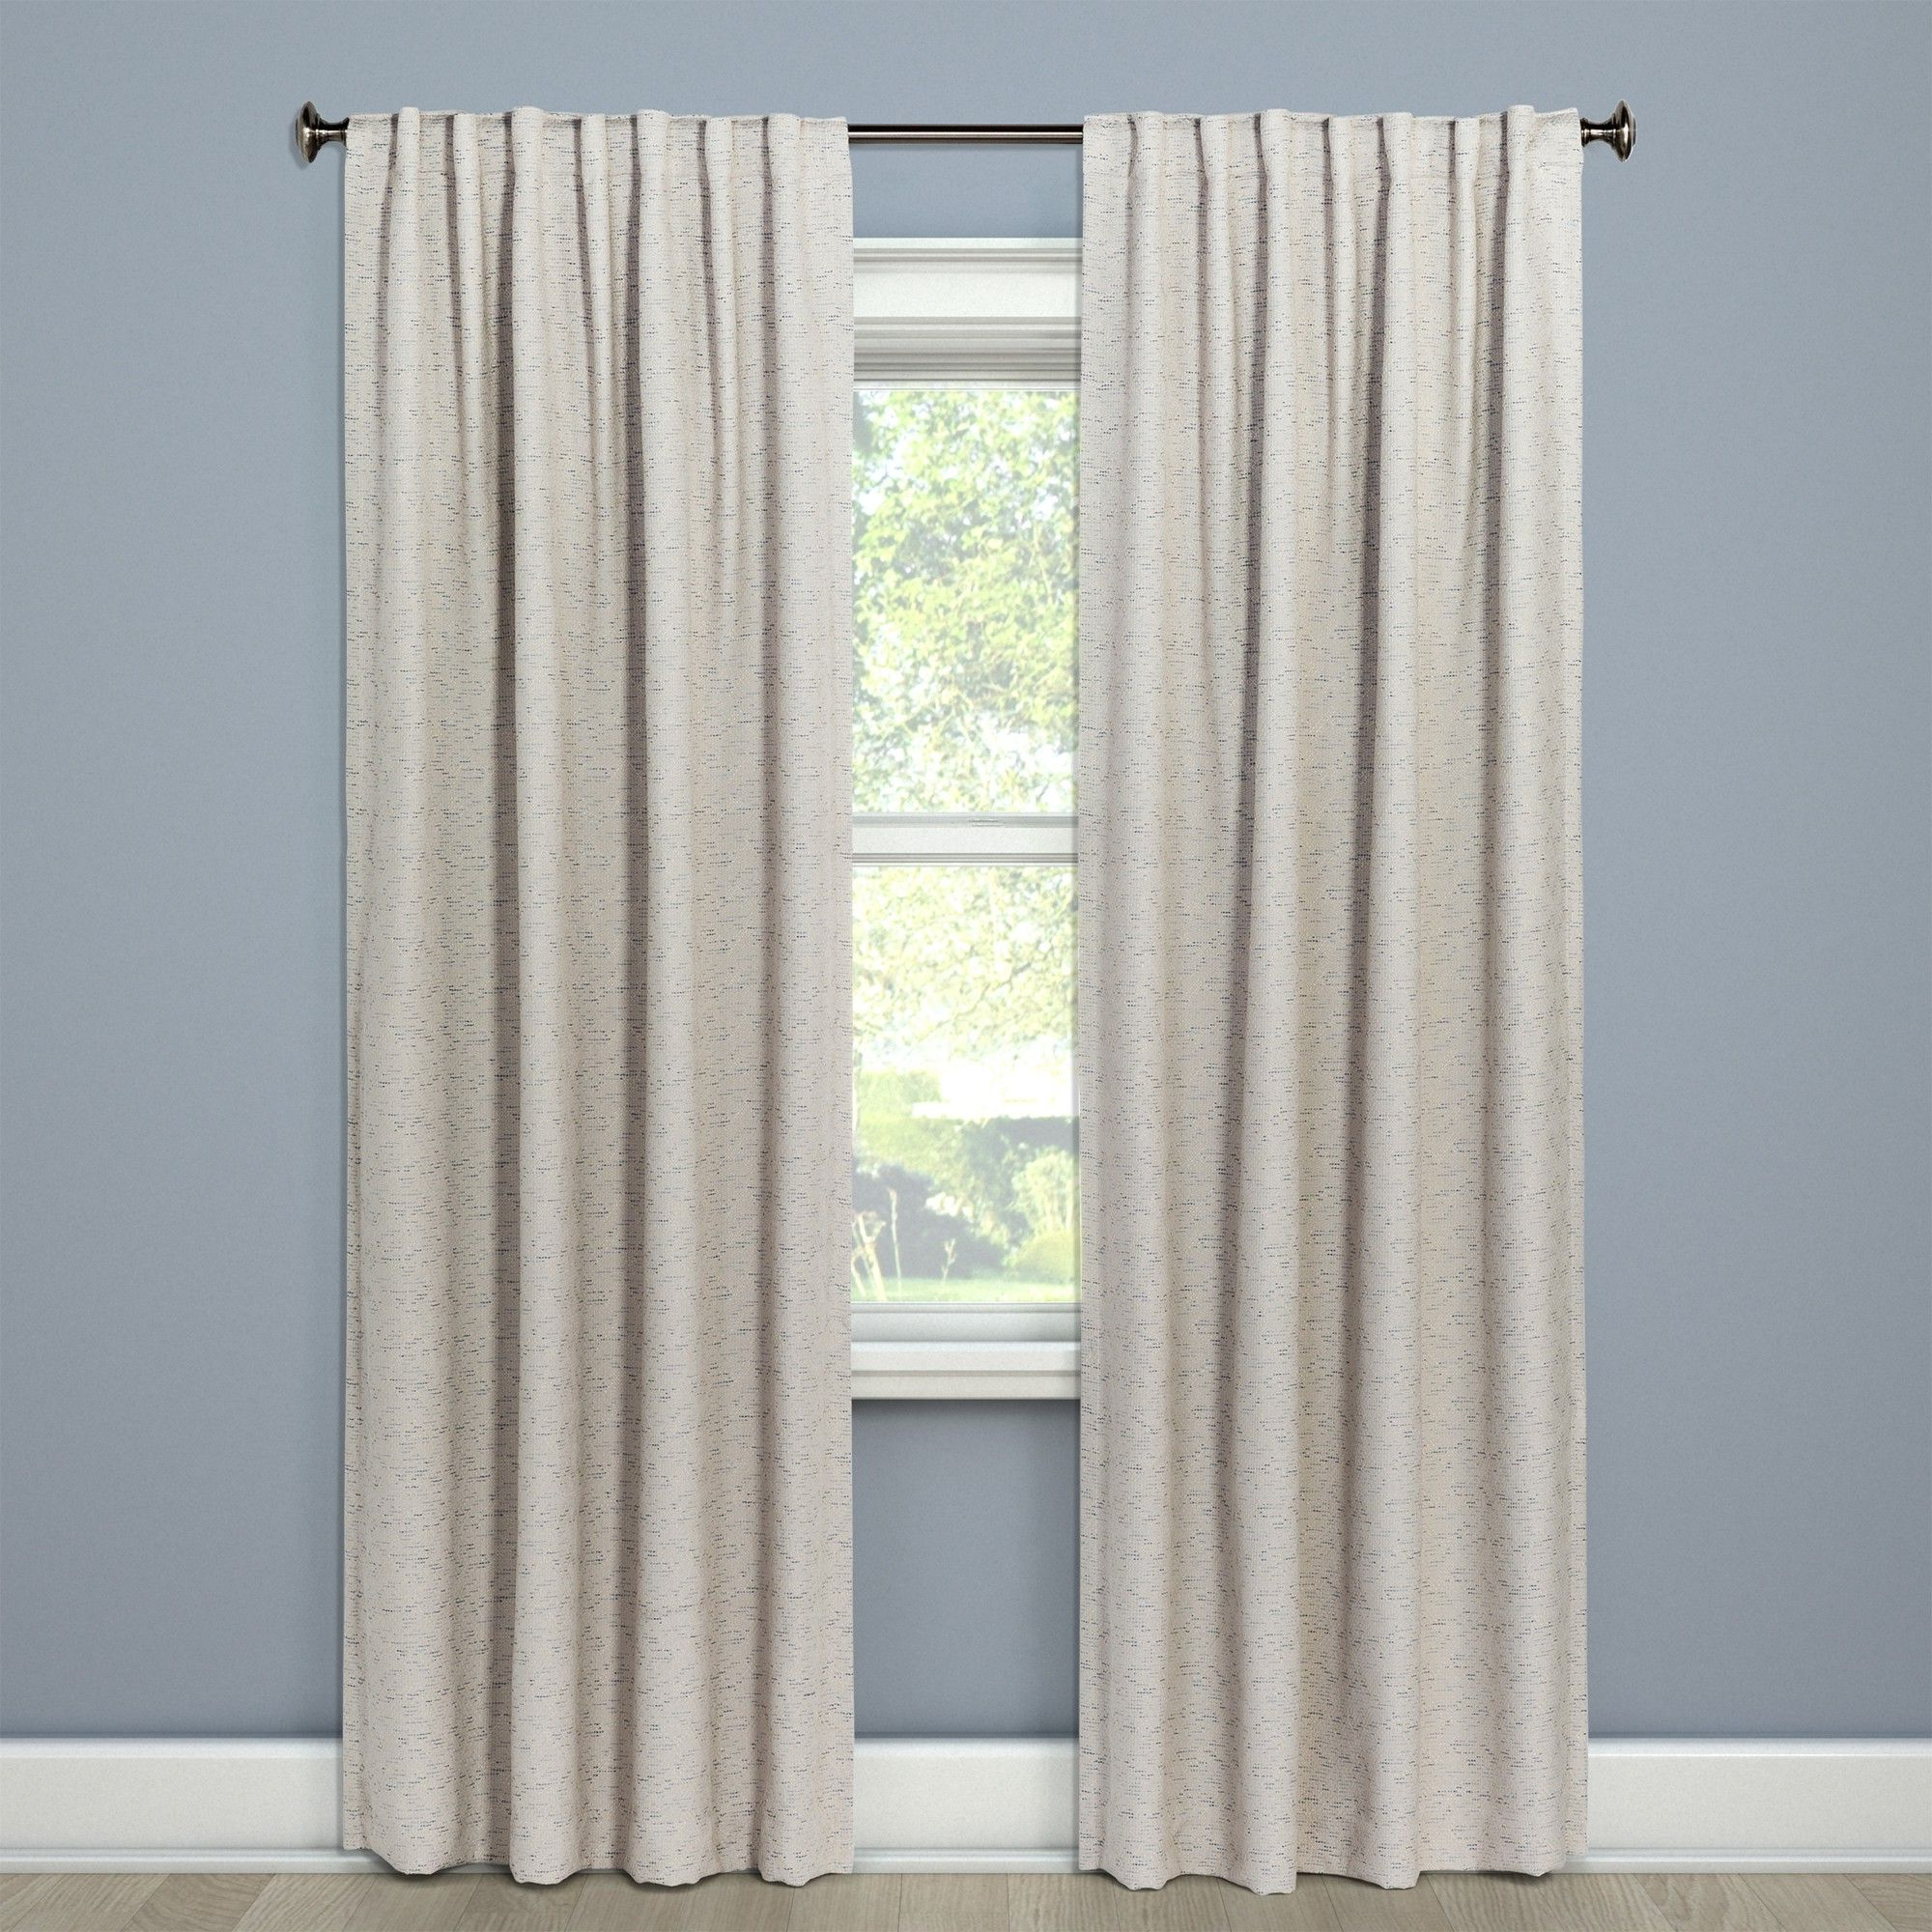 Widely Used Luxury Collection Faux Leather Blackout Single Curtain Panels Regarding Pin On Products (View 20 of 20)